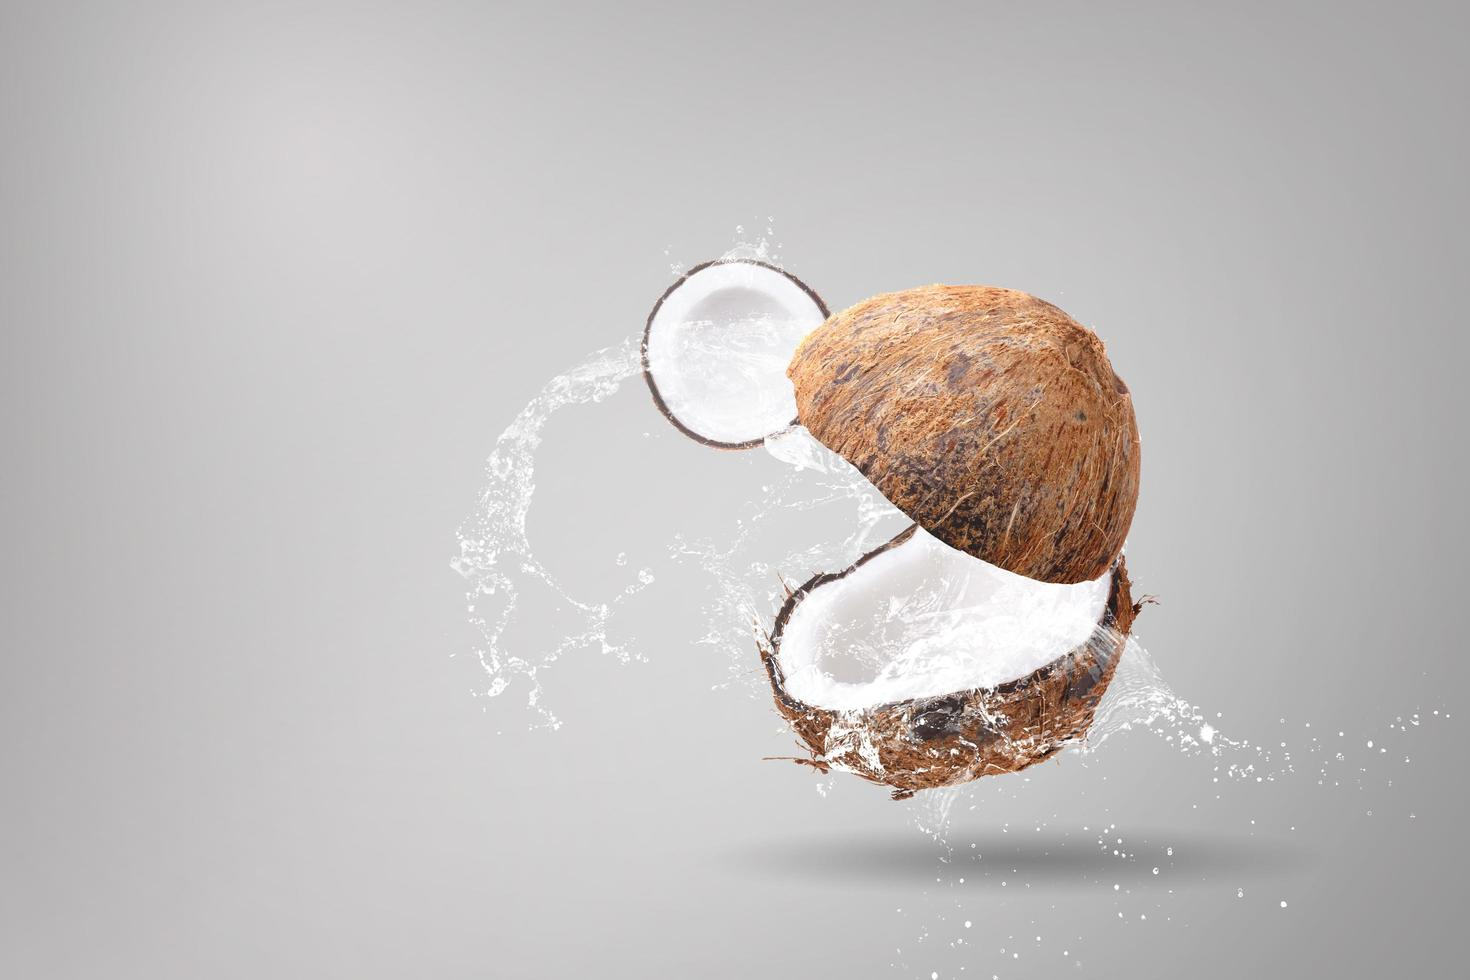 Water splashing on coconuts  photo